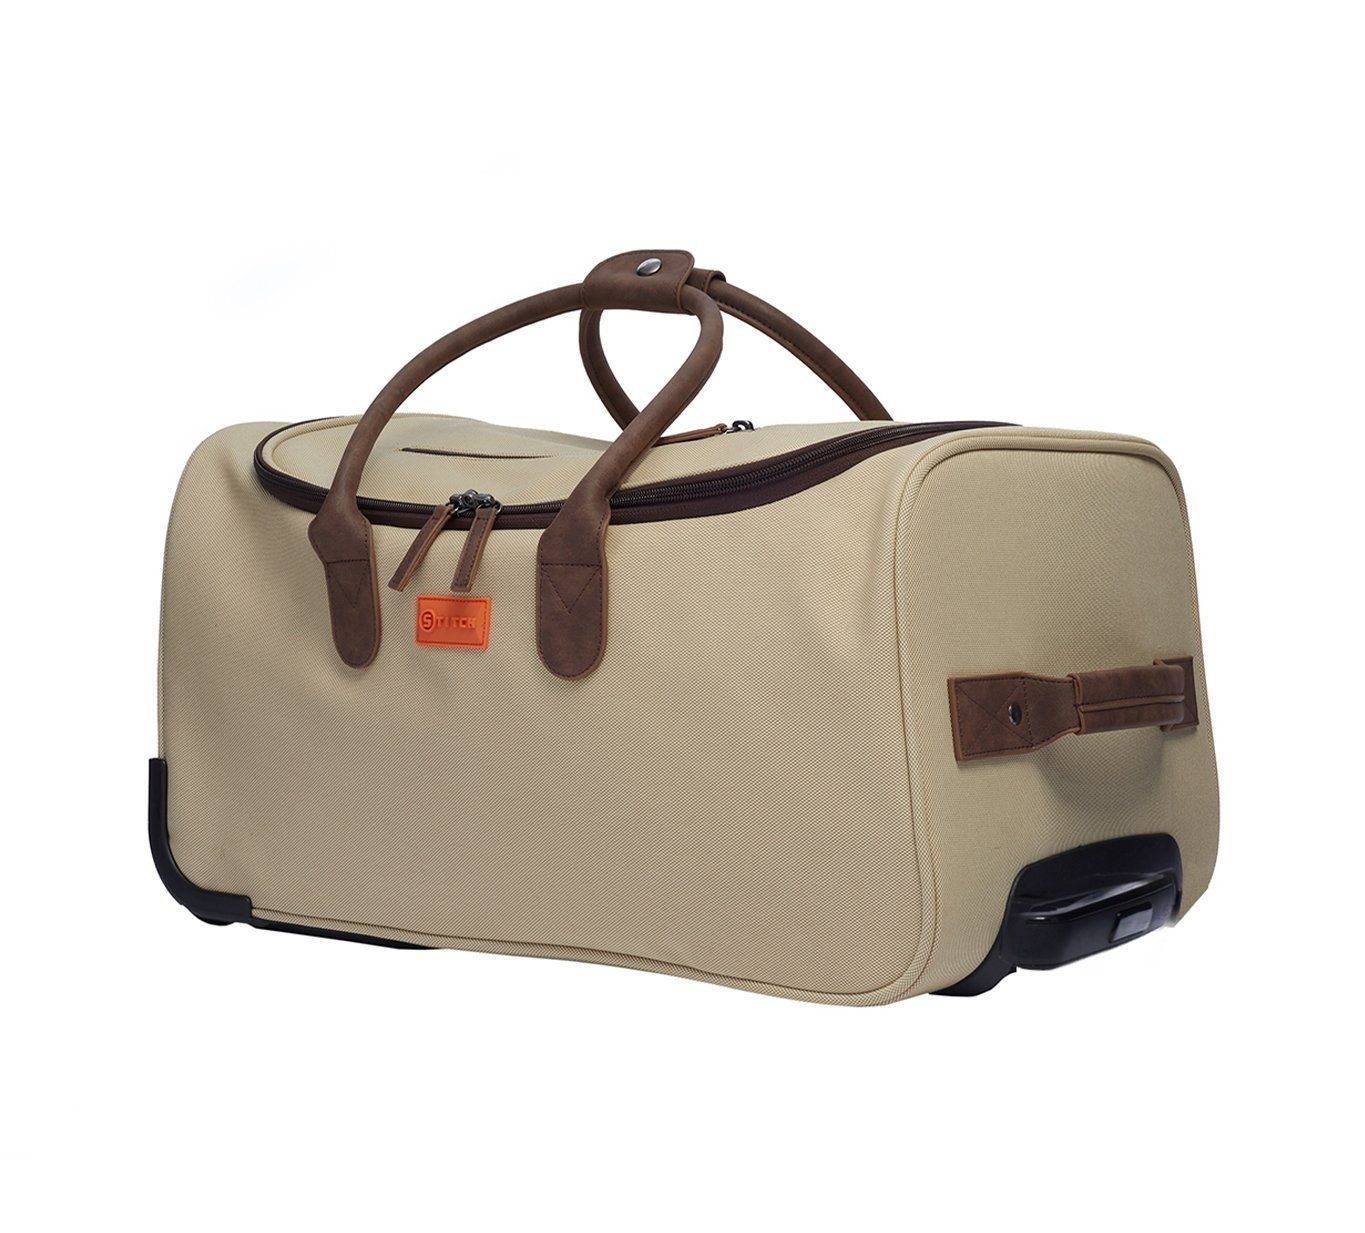 Vintage Luxe Roller Duffle Bag